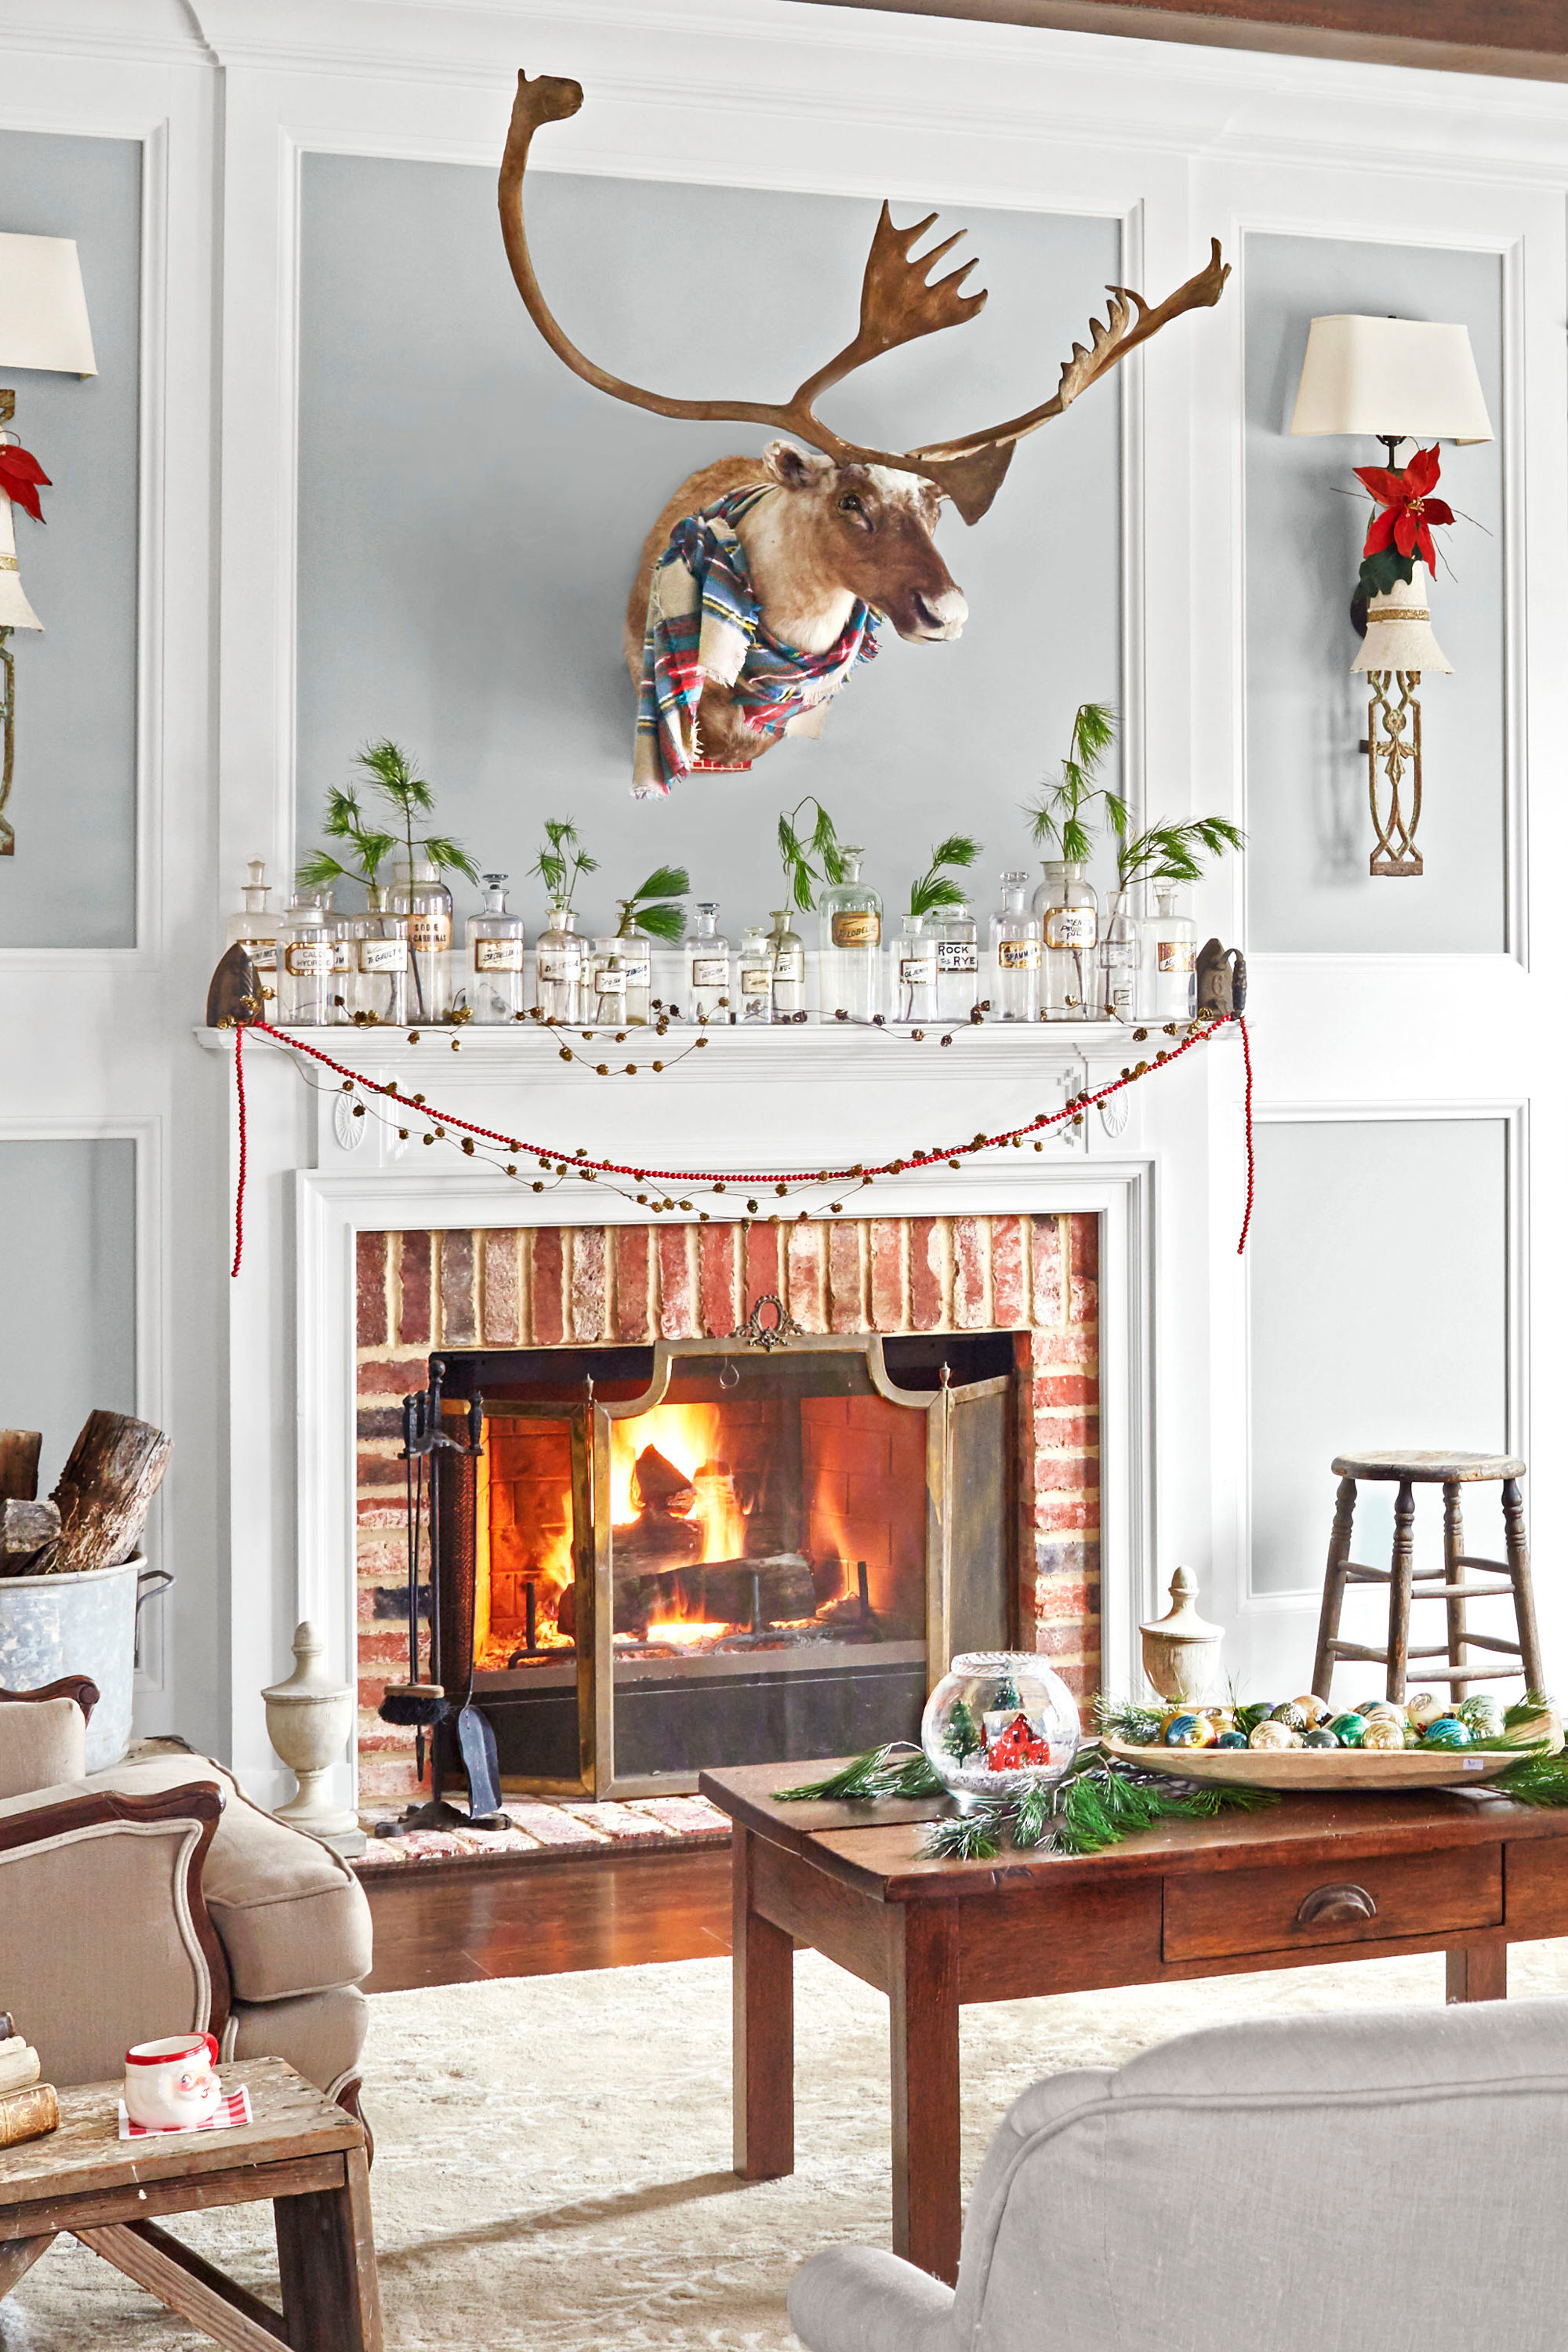 Decorating A Mantel For Christmas 35 christmas mantel decorations - ideas for holiday fireplace